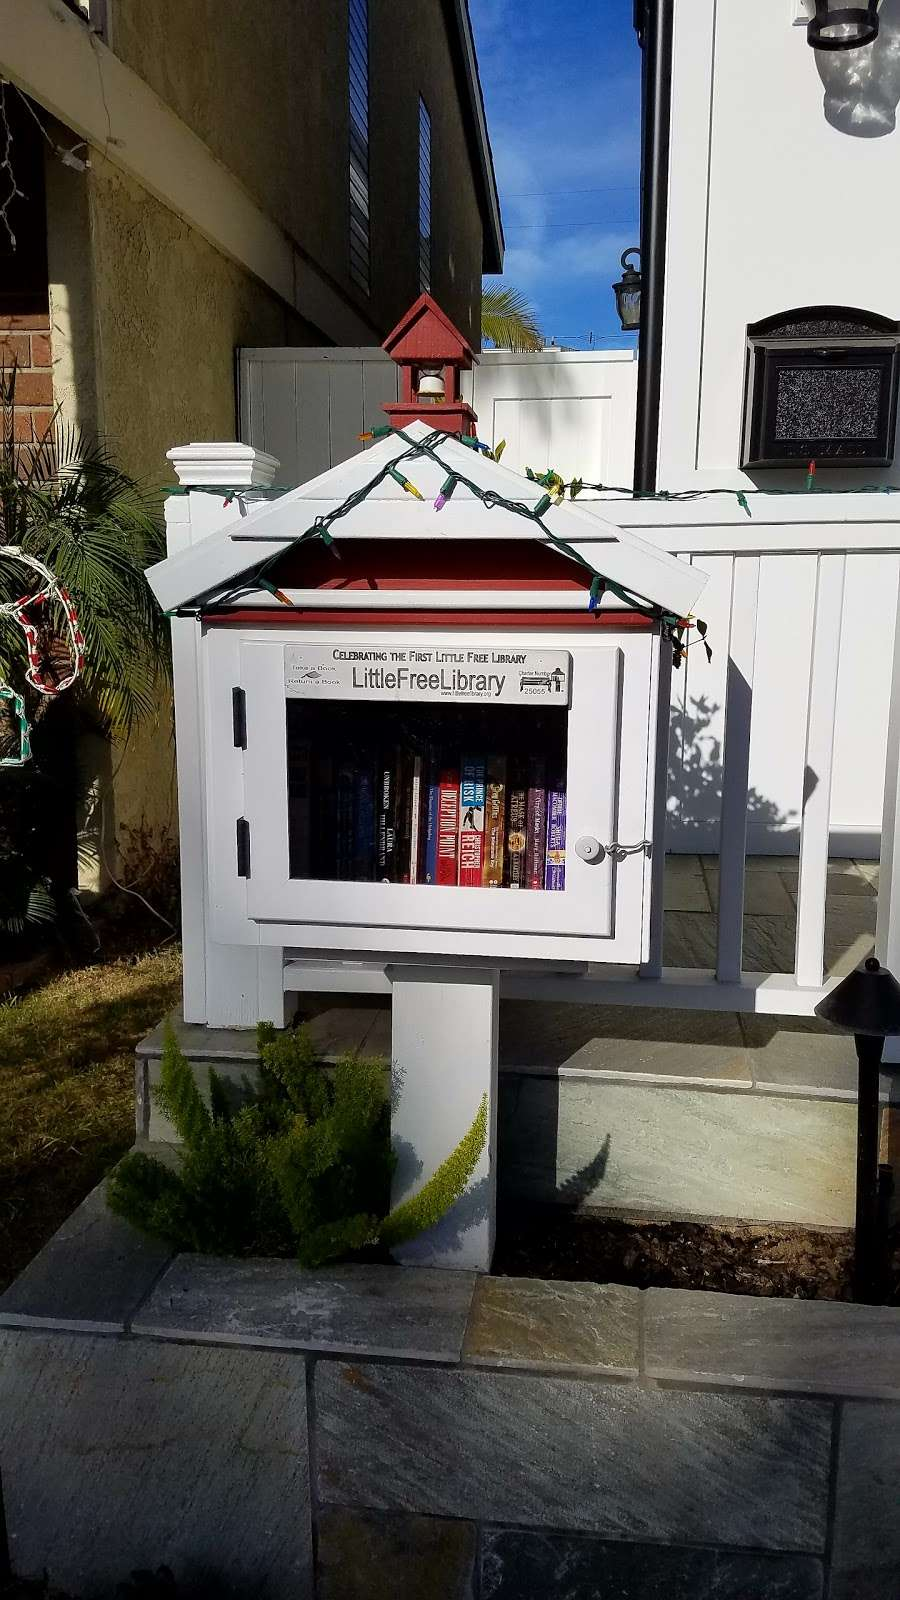 Little Free Library - library  | Photo 2 of 2 | Address: 223 Marguerite Ave, Corona Del Mar, CA 92625, USA